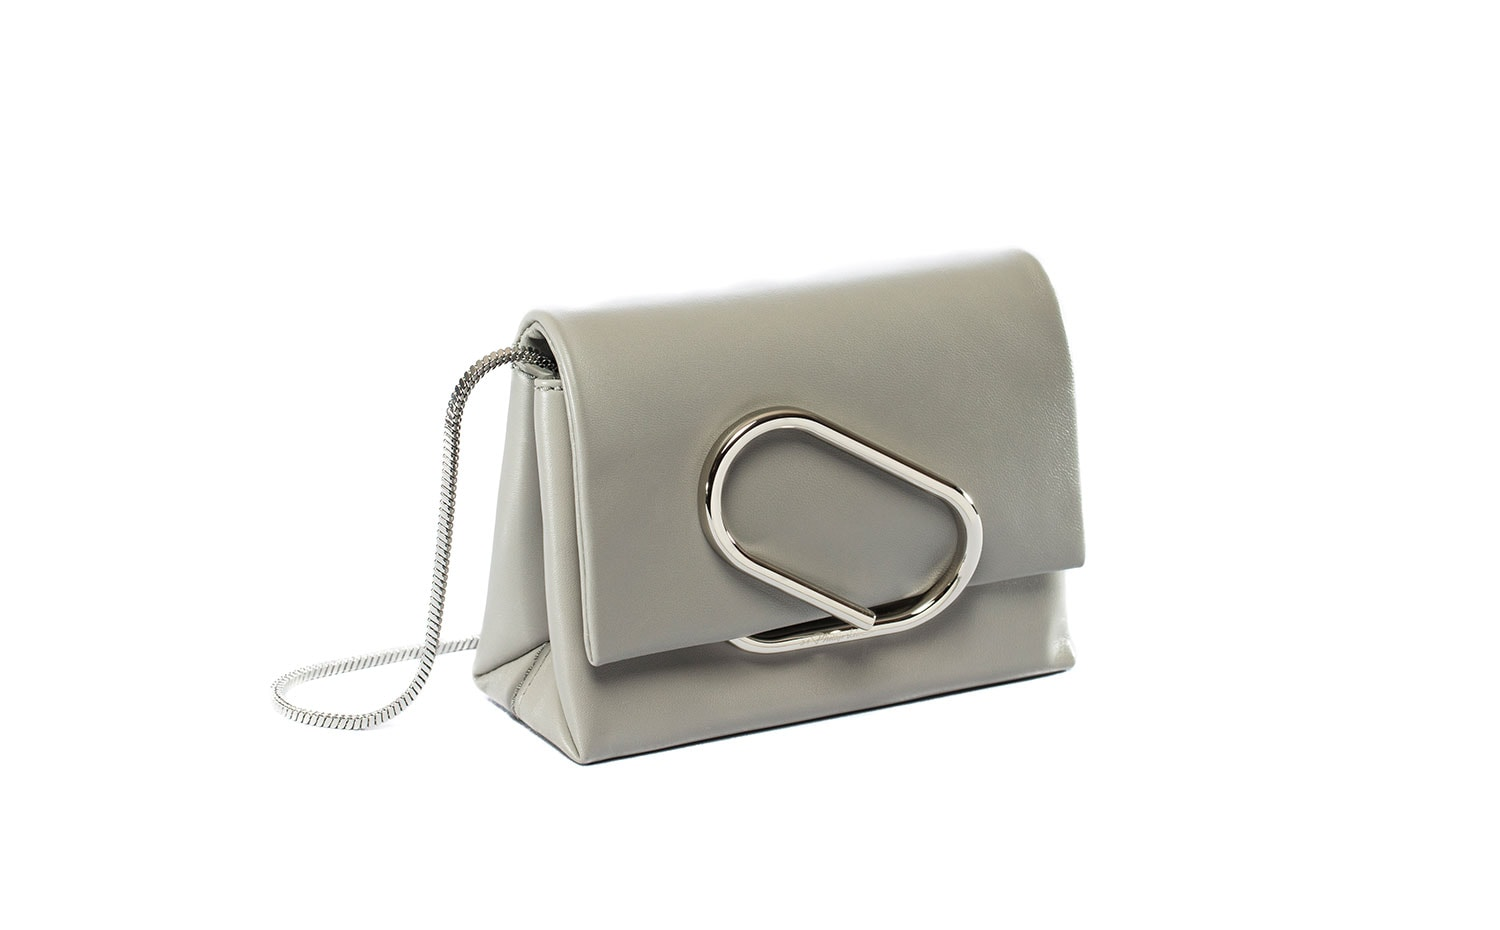 3.1 Phillip Lim: ALIX Micro Crossbody in Cement